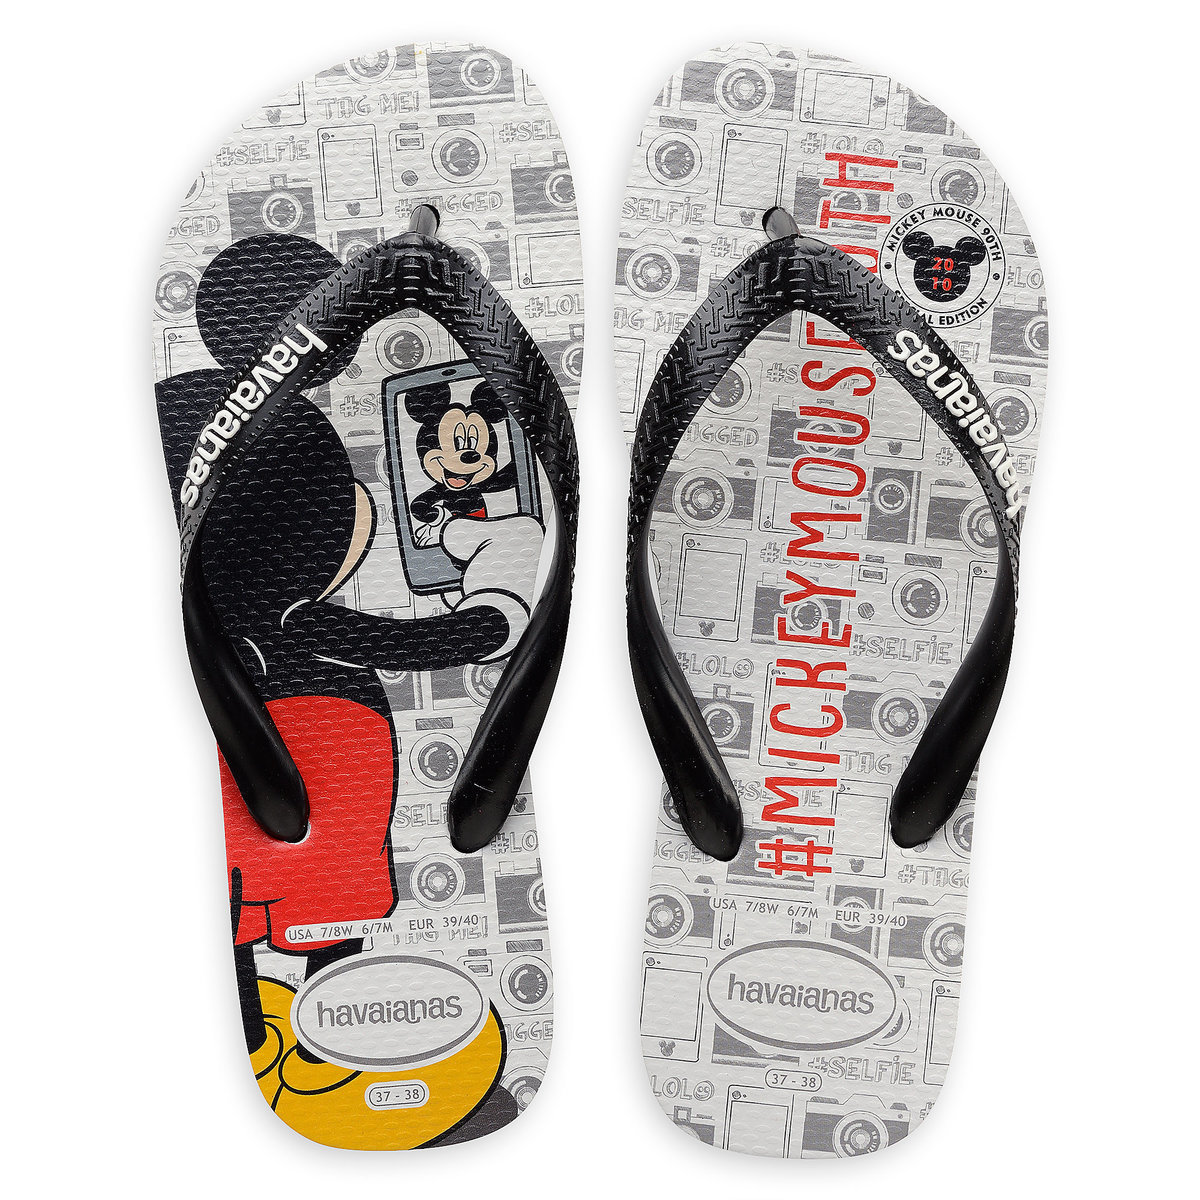 bad381a18 Product Image of Mickey Mouse Selfie Flip Flops for Adults by Havaianas -  2010s   1